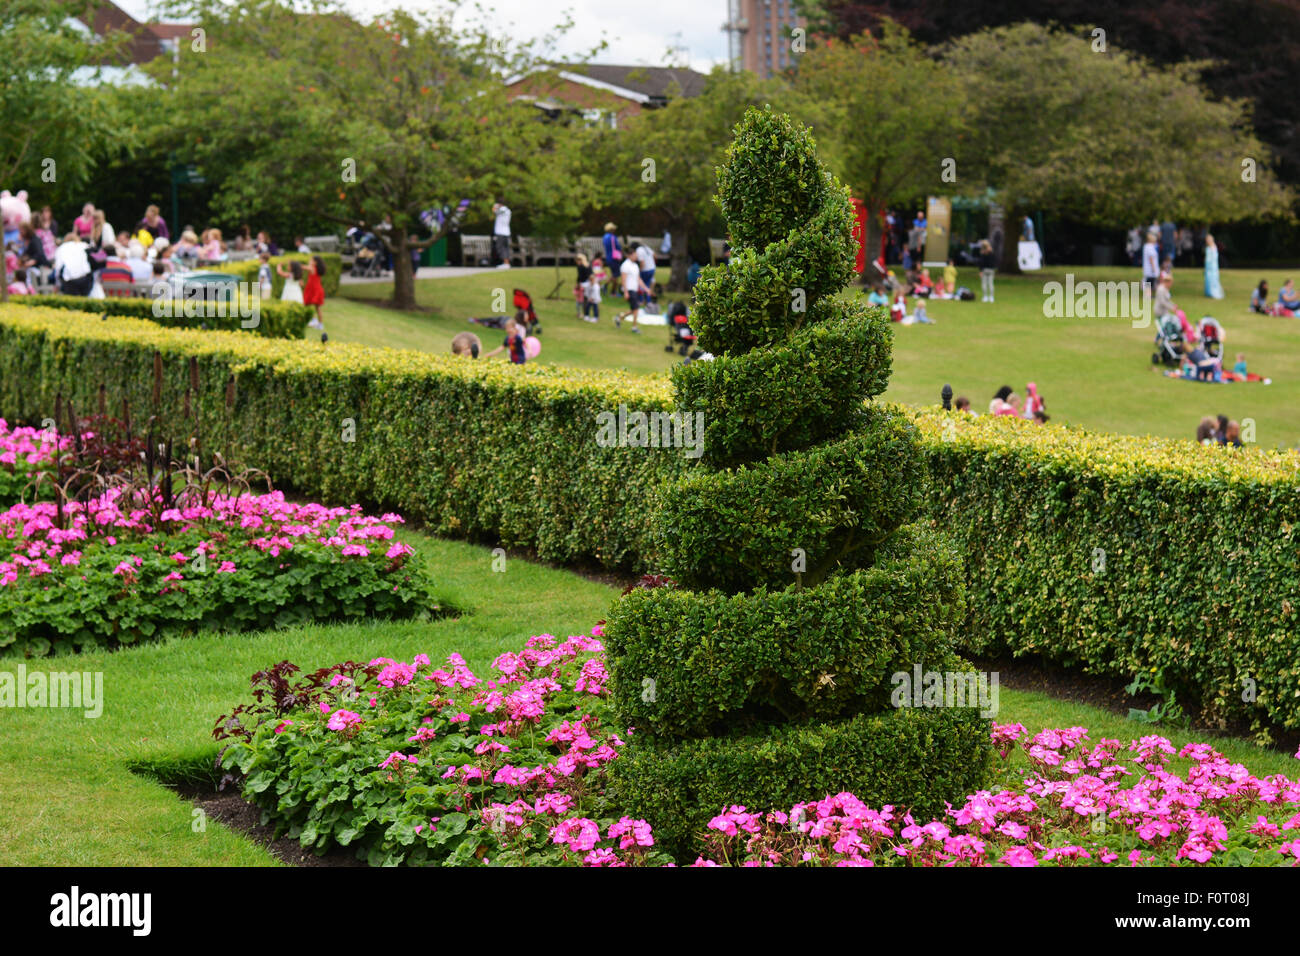 A spiral shrubbery located in Birmingham Botanical Gardens. - Stock Image